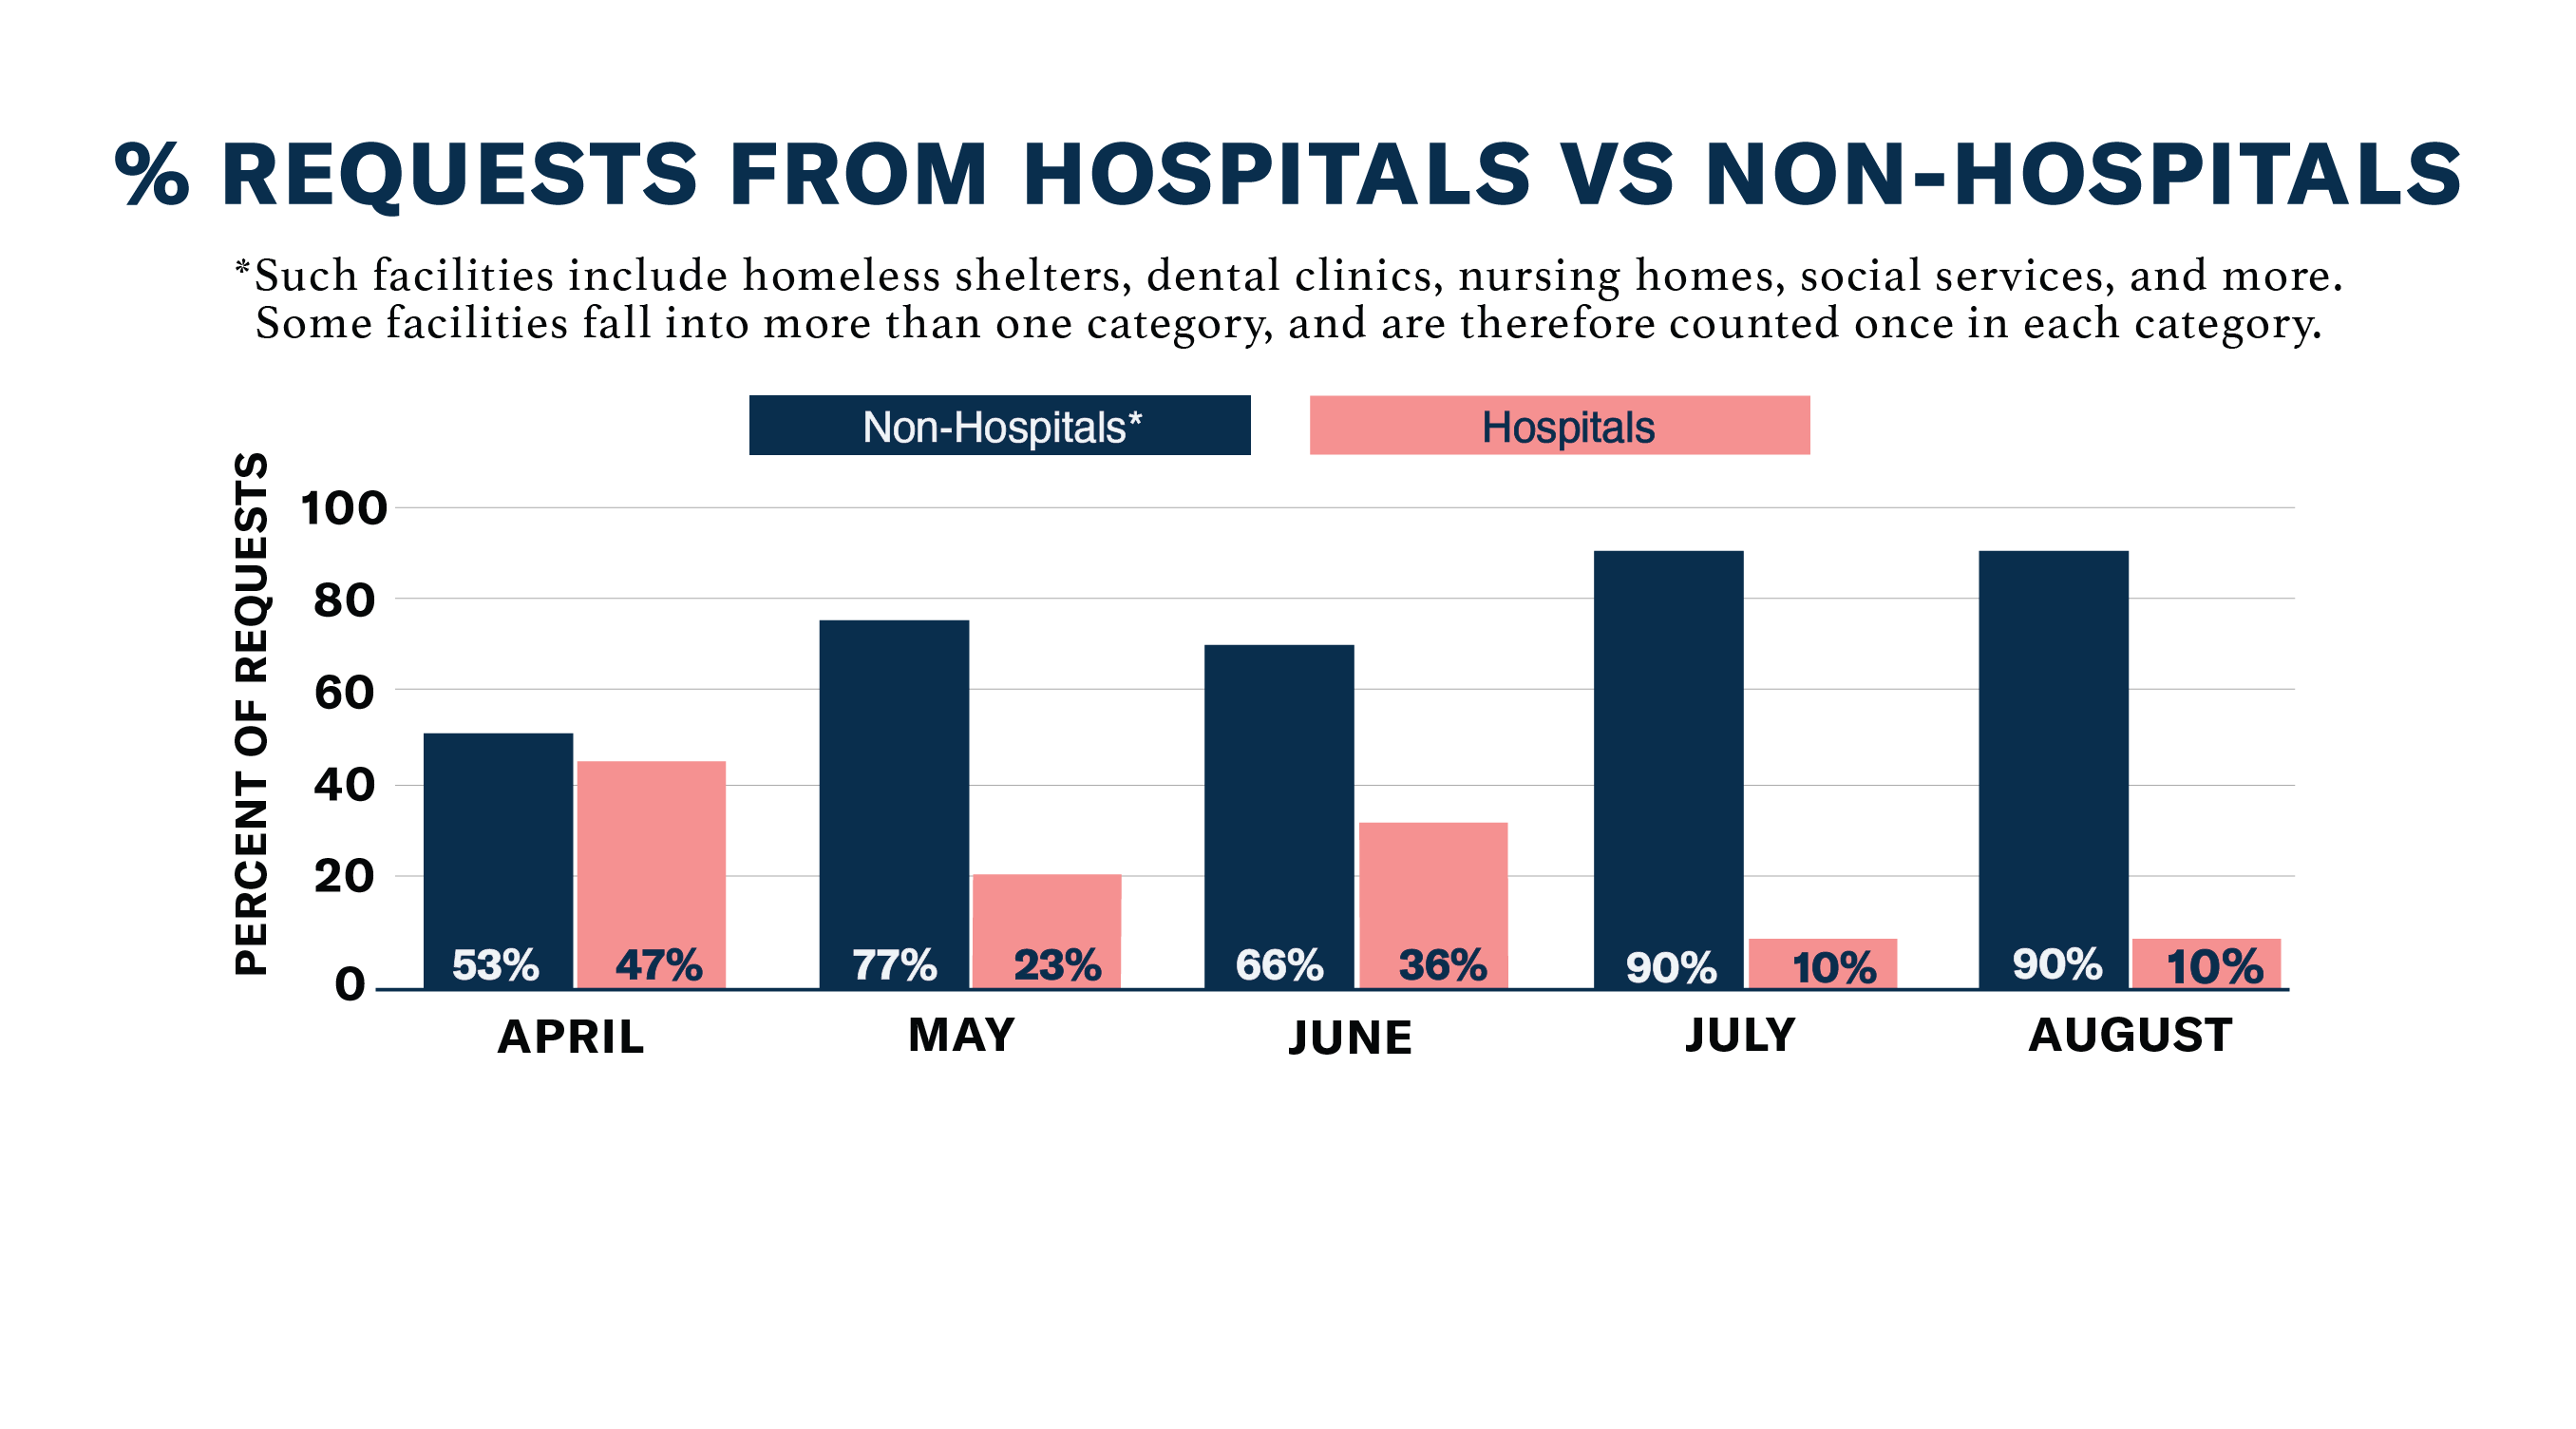 Chart: % Requests from Hospitals vs. Non-Hospitals, August 2020